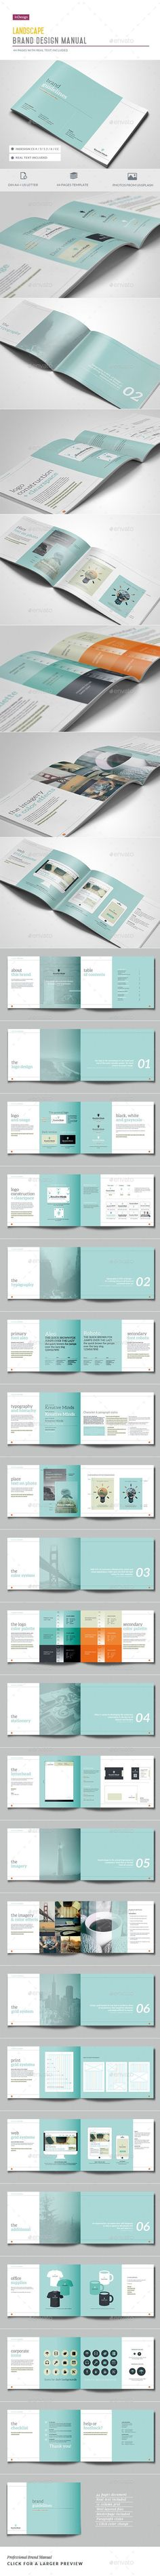 Brand Guidelines - 44 Pages Template InDesign INDD #design